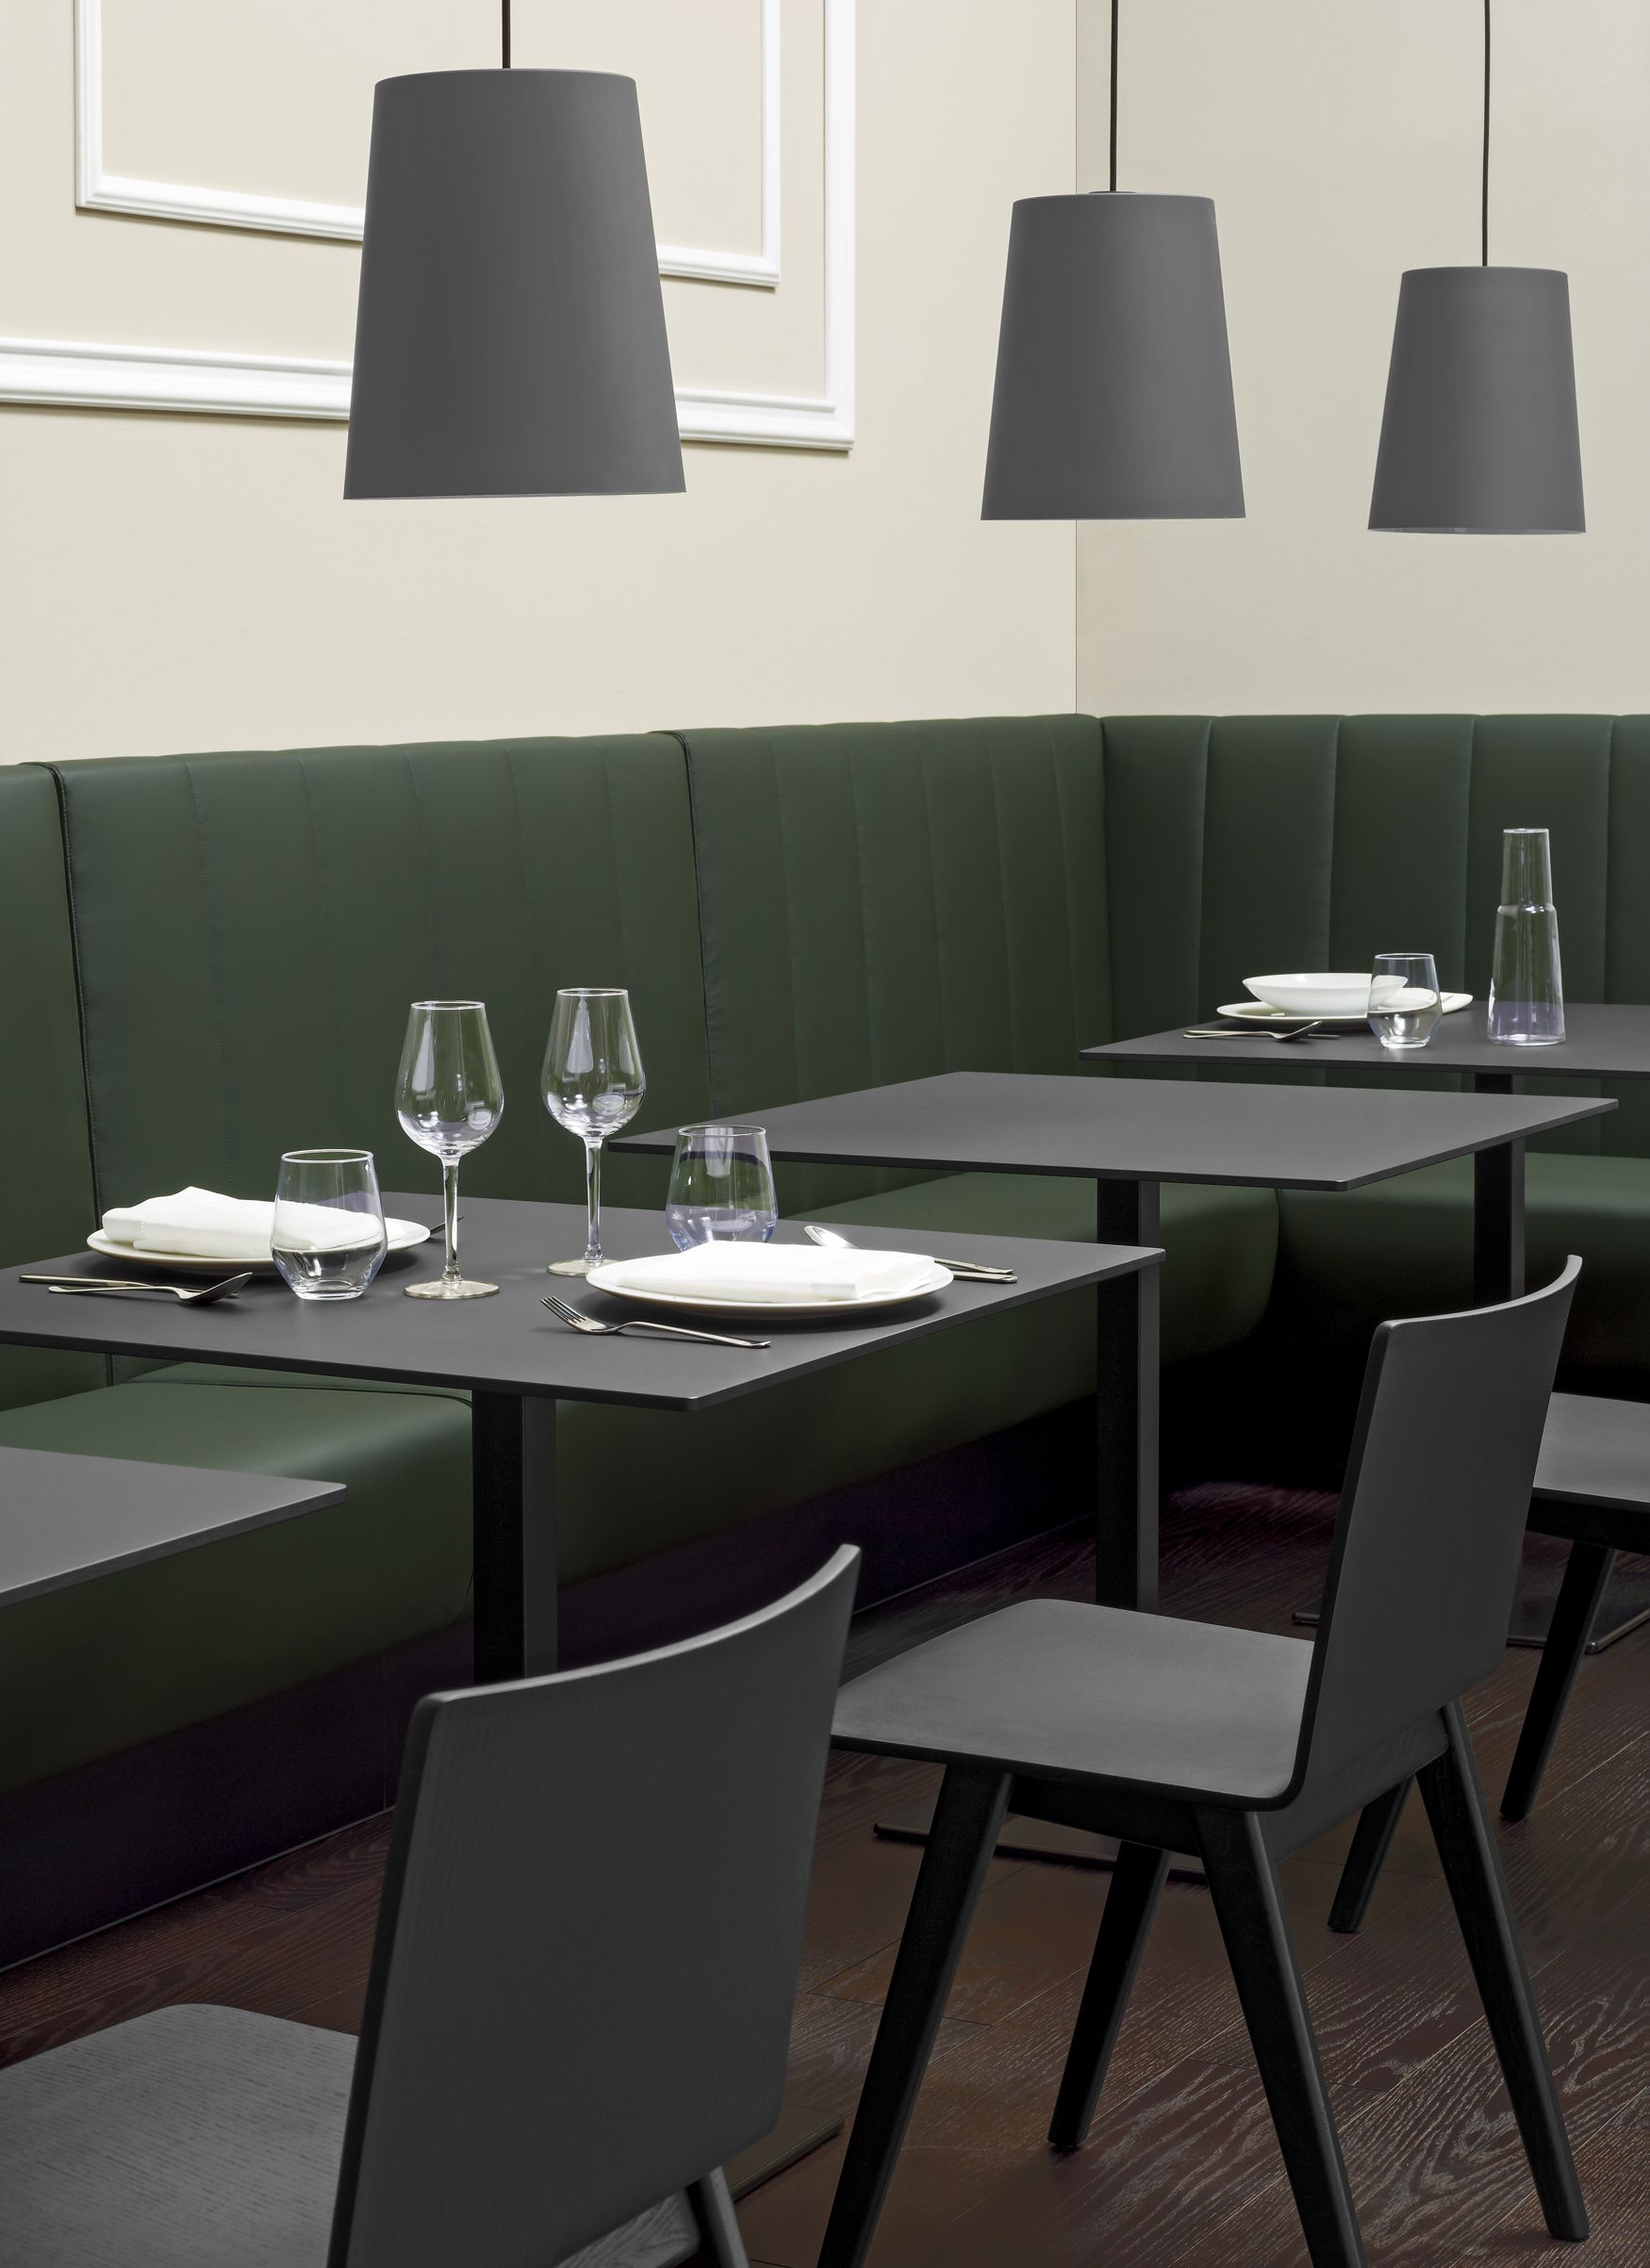 Saka Black Wood Cafe Chair And Inox Cafe Table / ORDER NOW FROM SPACEIST